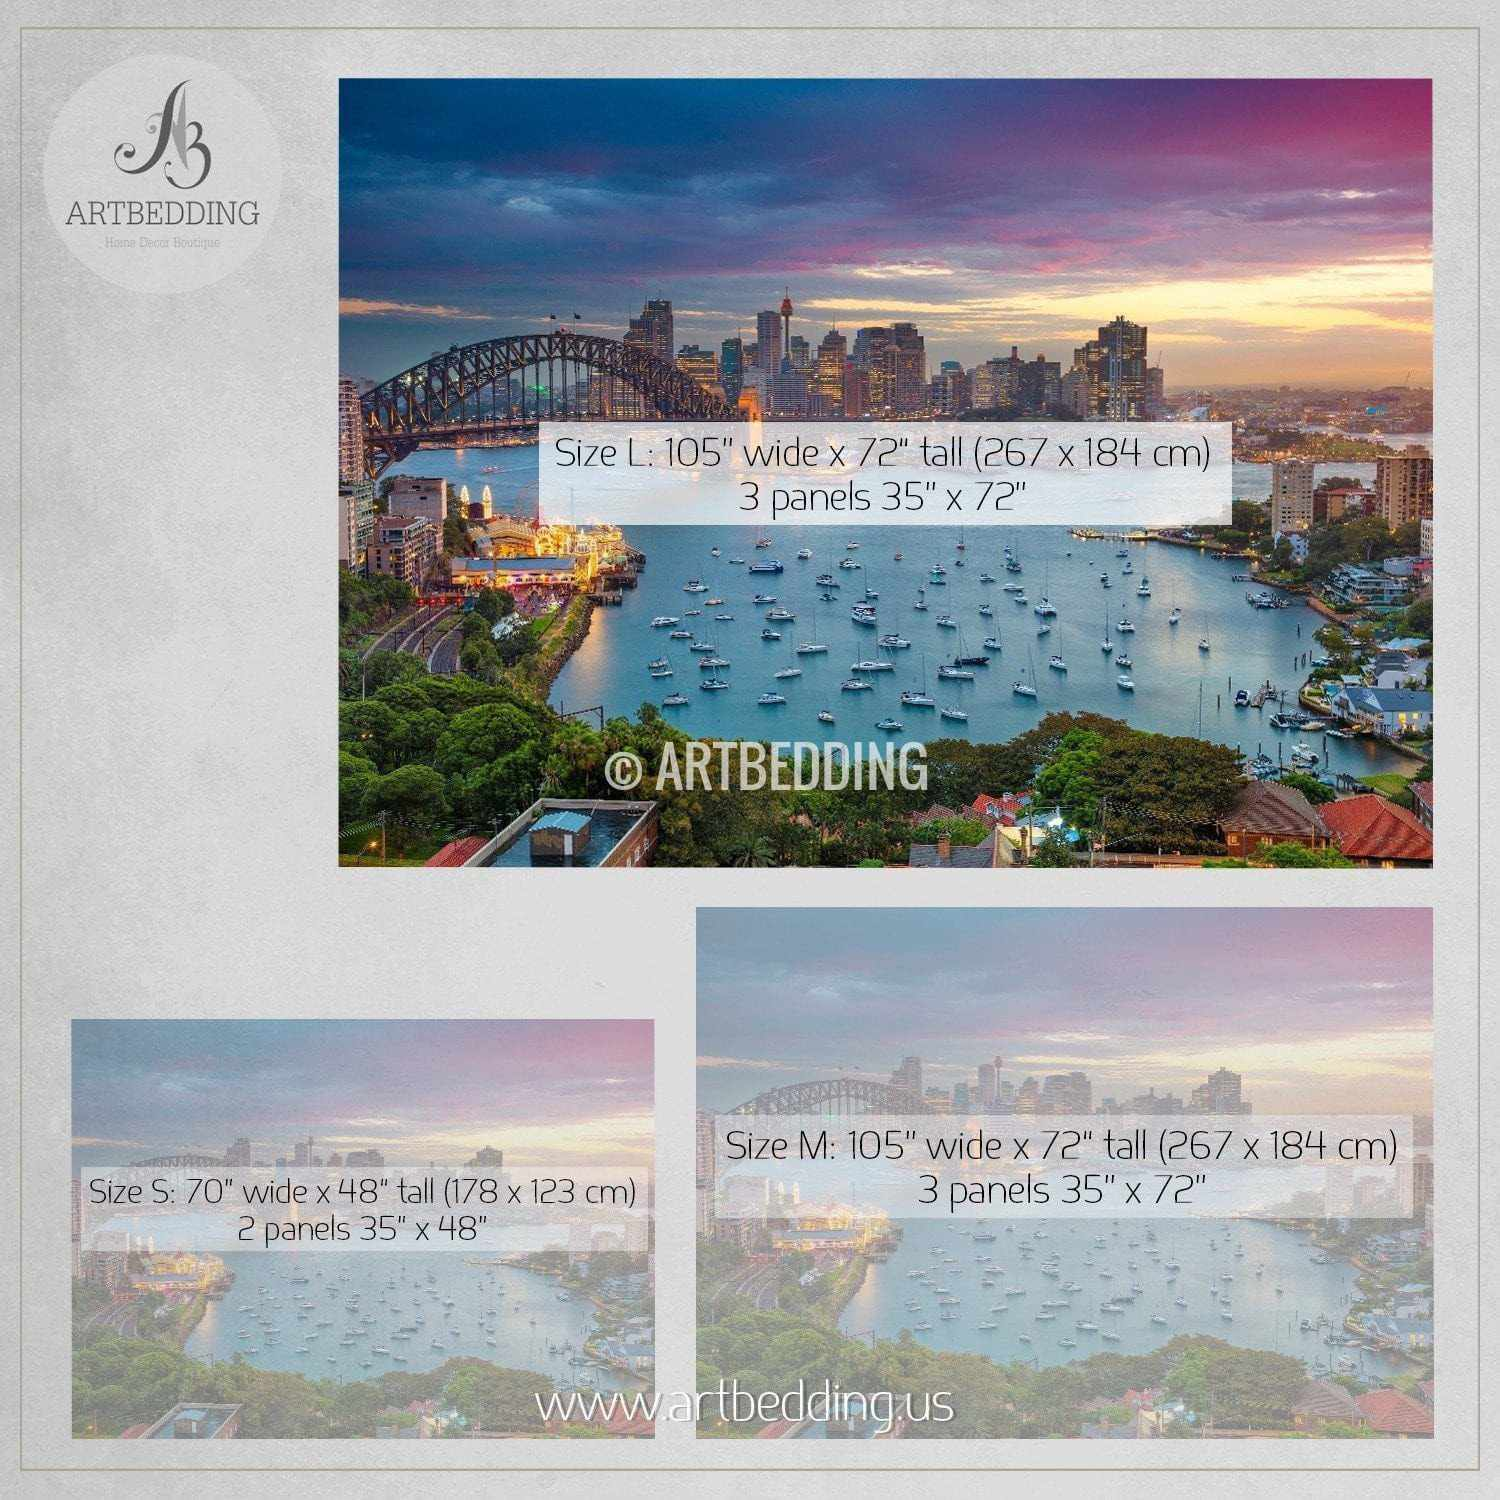 wall murals peel and stick self adhesive vinyl hd print page 5 sydney with harbour bridge and skyline during sunset cityscape wall mural australia photo sticker